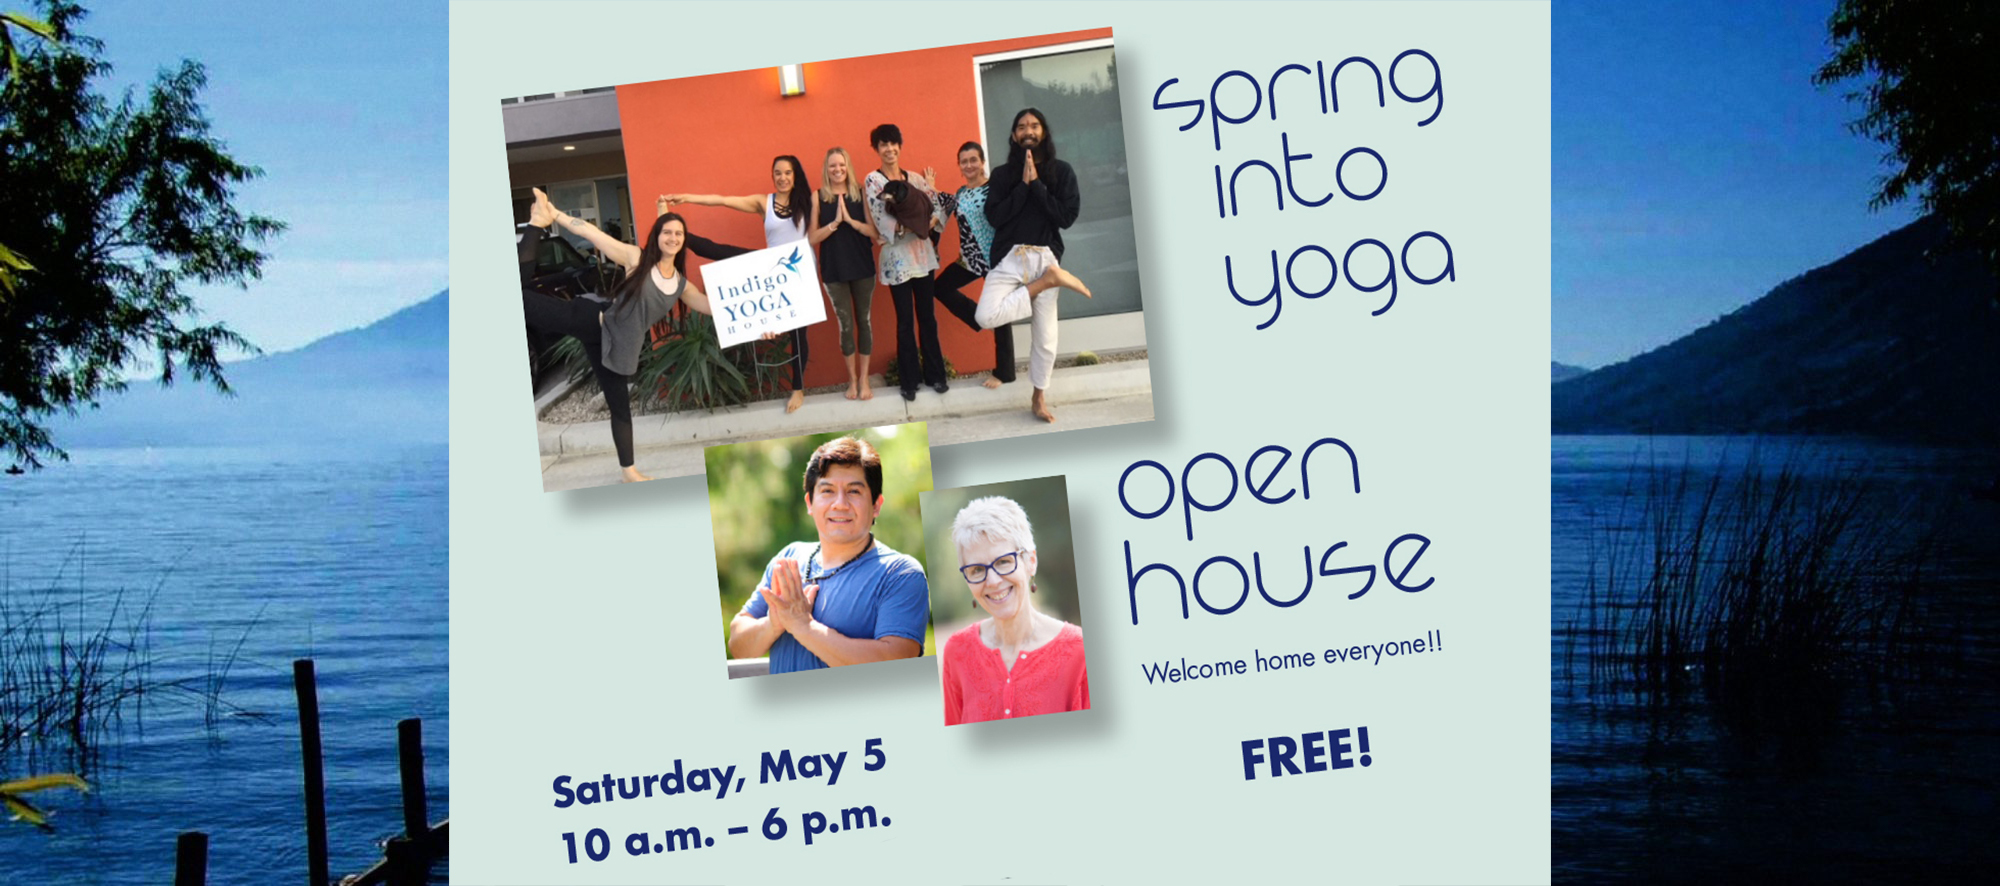 SPRING OPEN HOUSE BACKGROUND